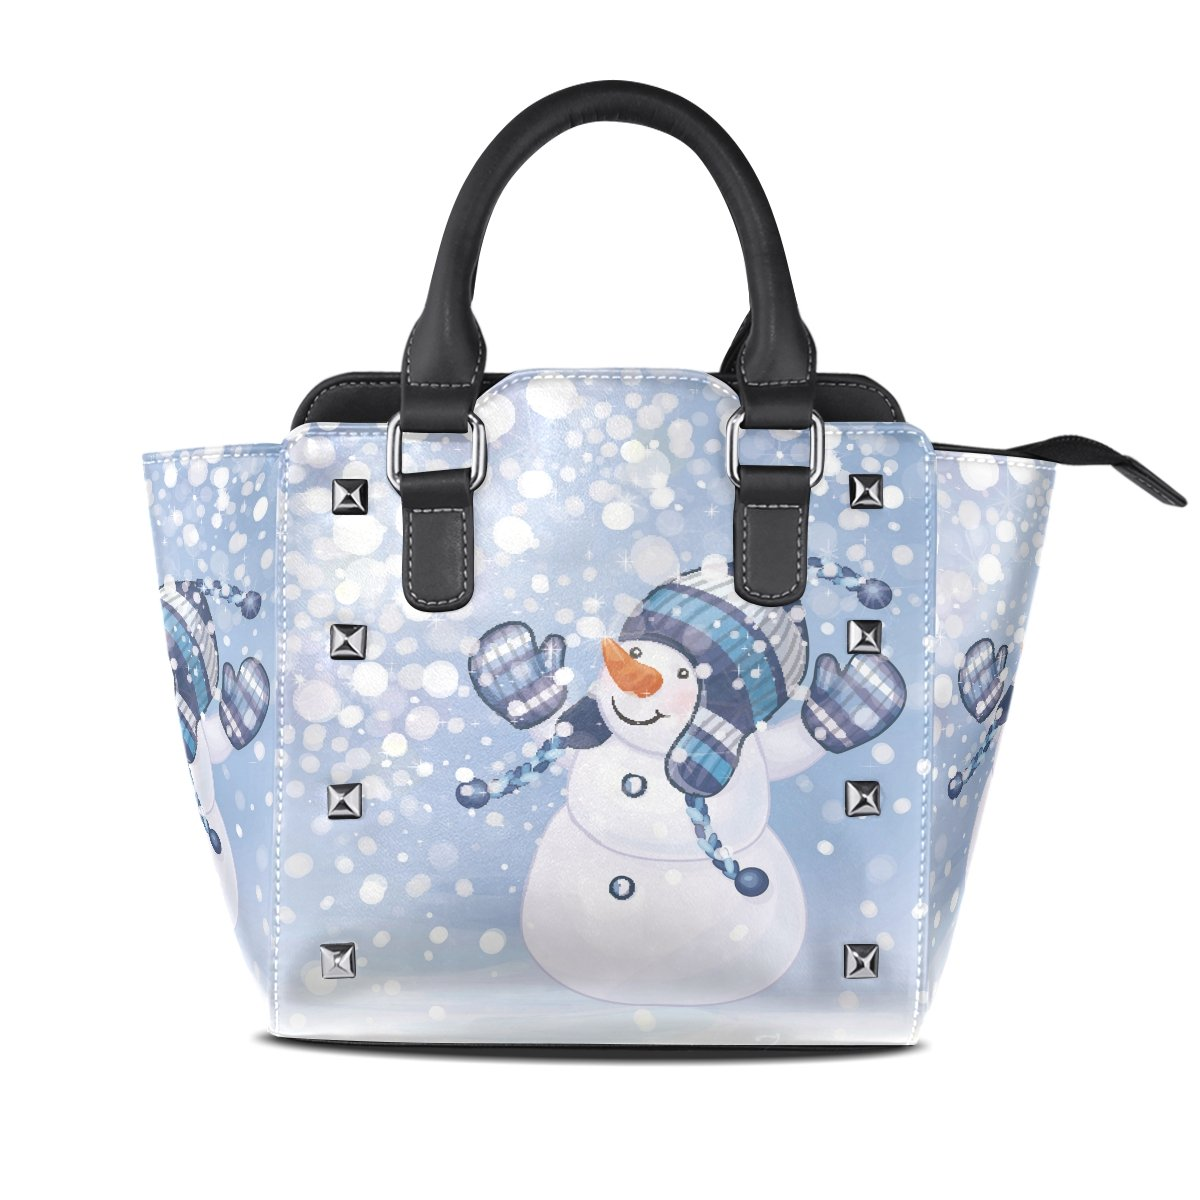 Womens Genuine Leather Hangbags Tote Bags Snowman Purse Shoulder Bags